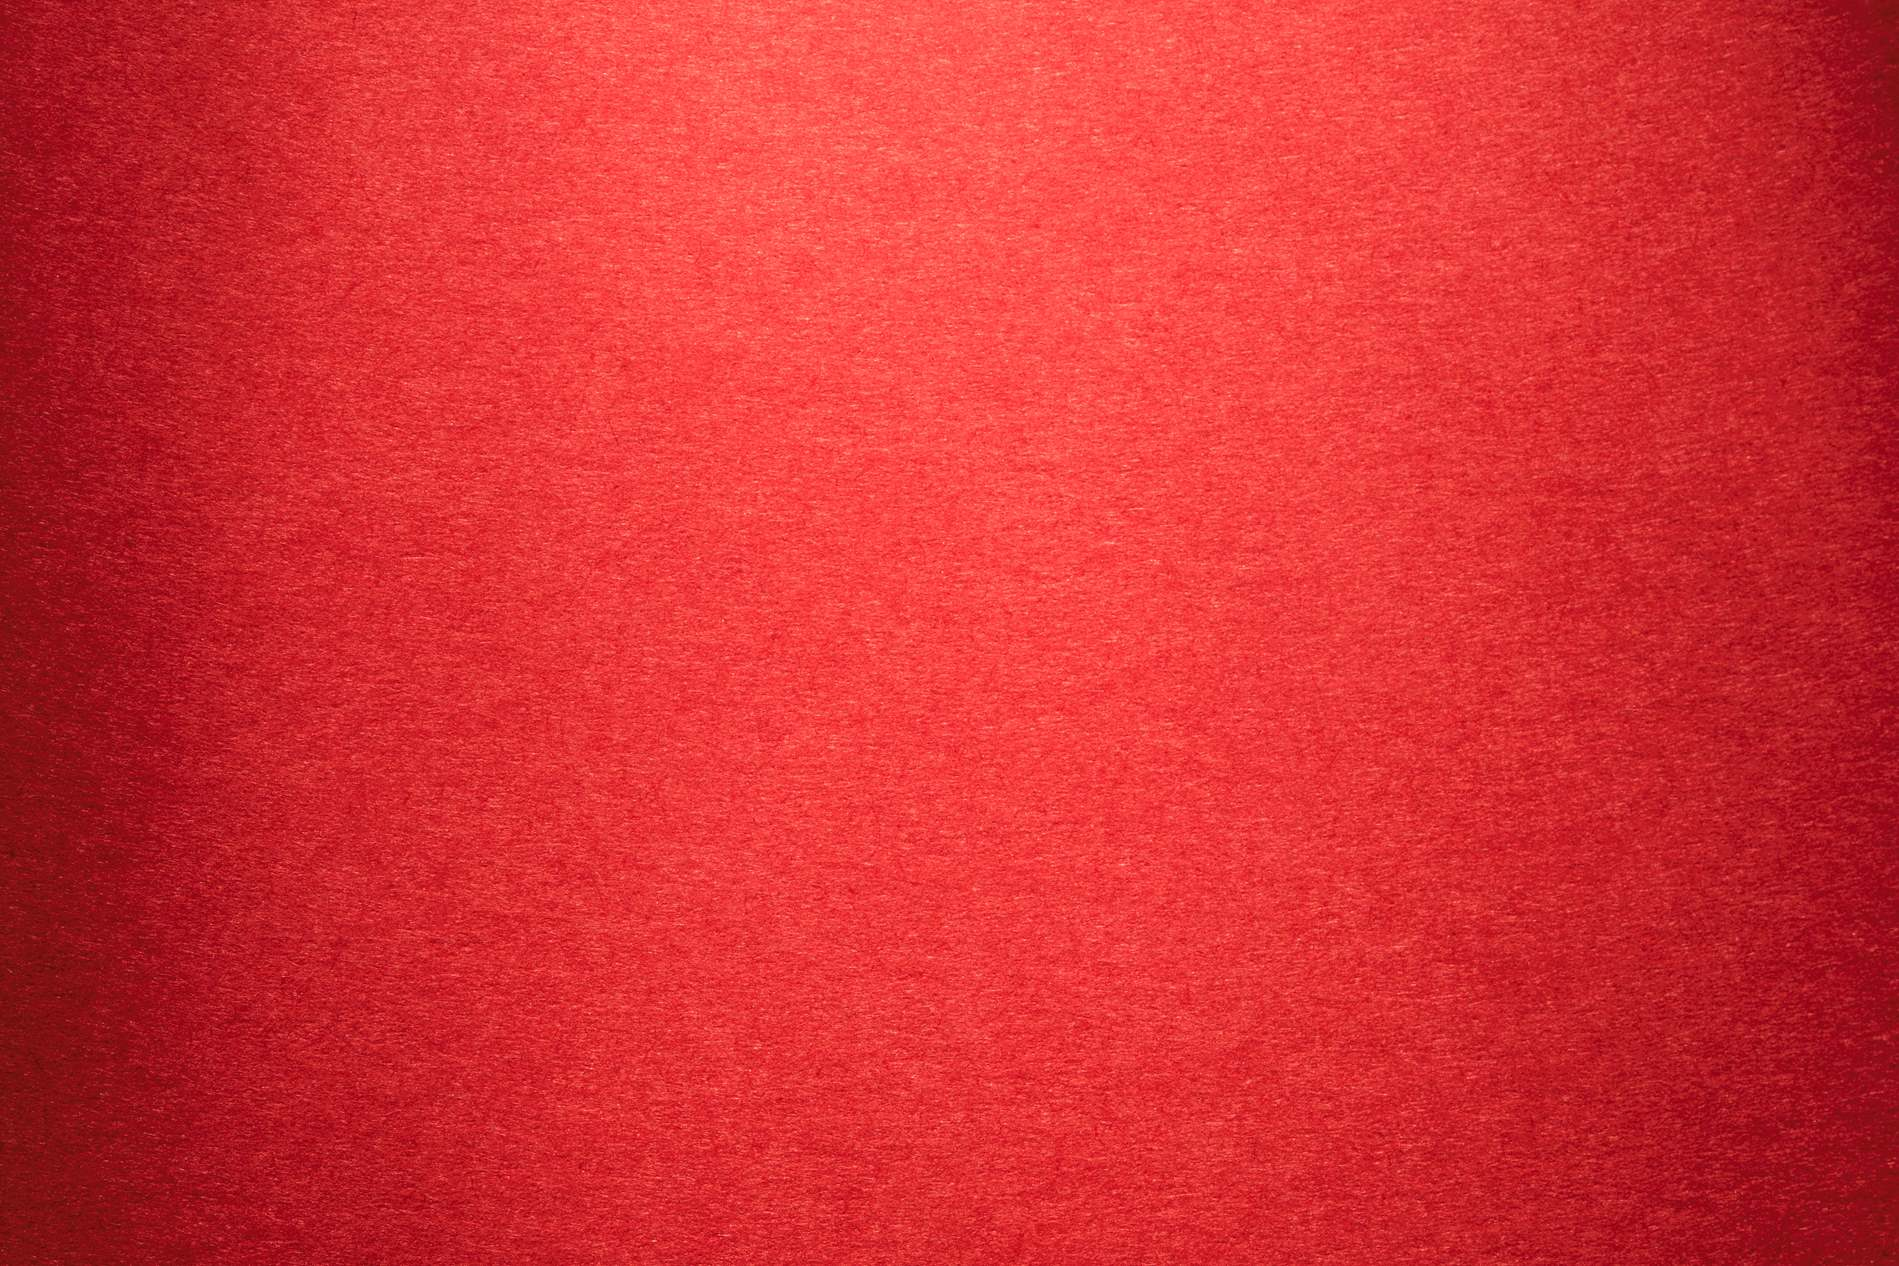 clean red paper background texture photohdx